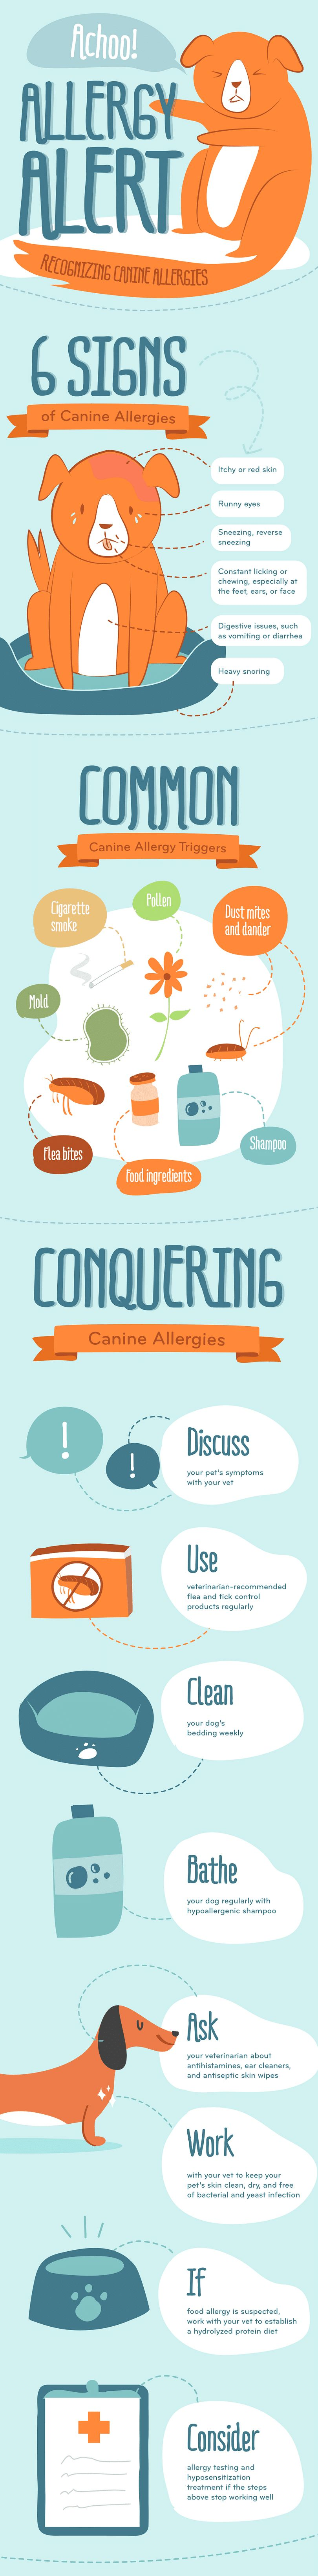 Dog allergies infographic